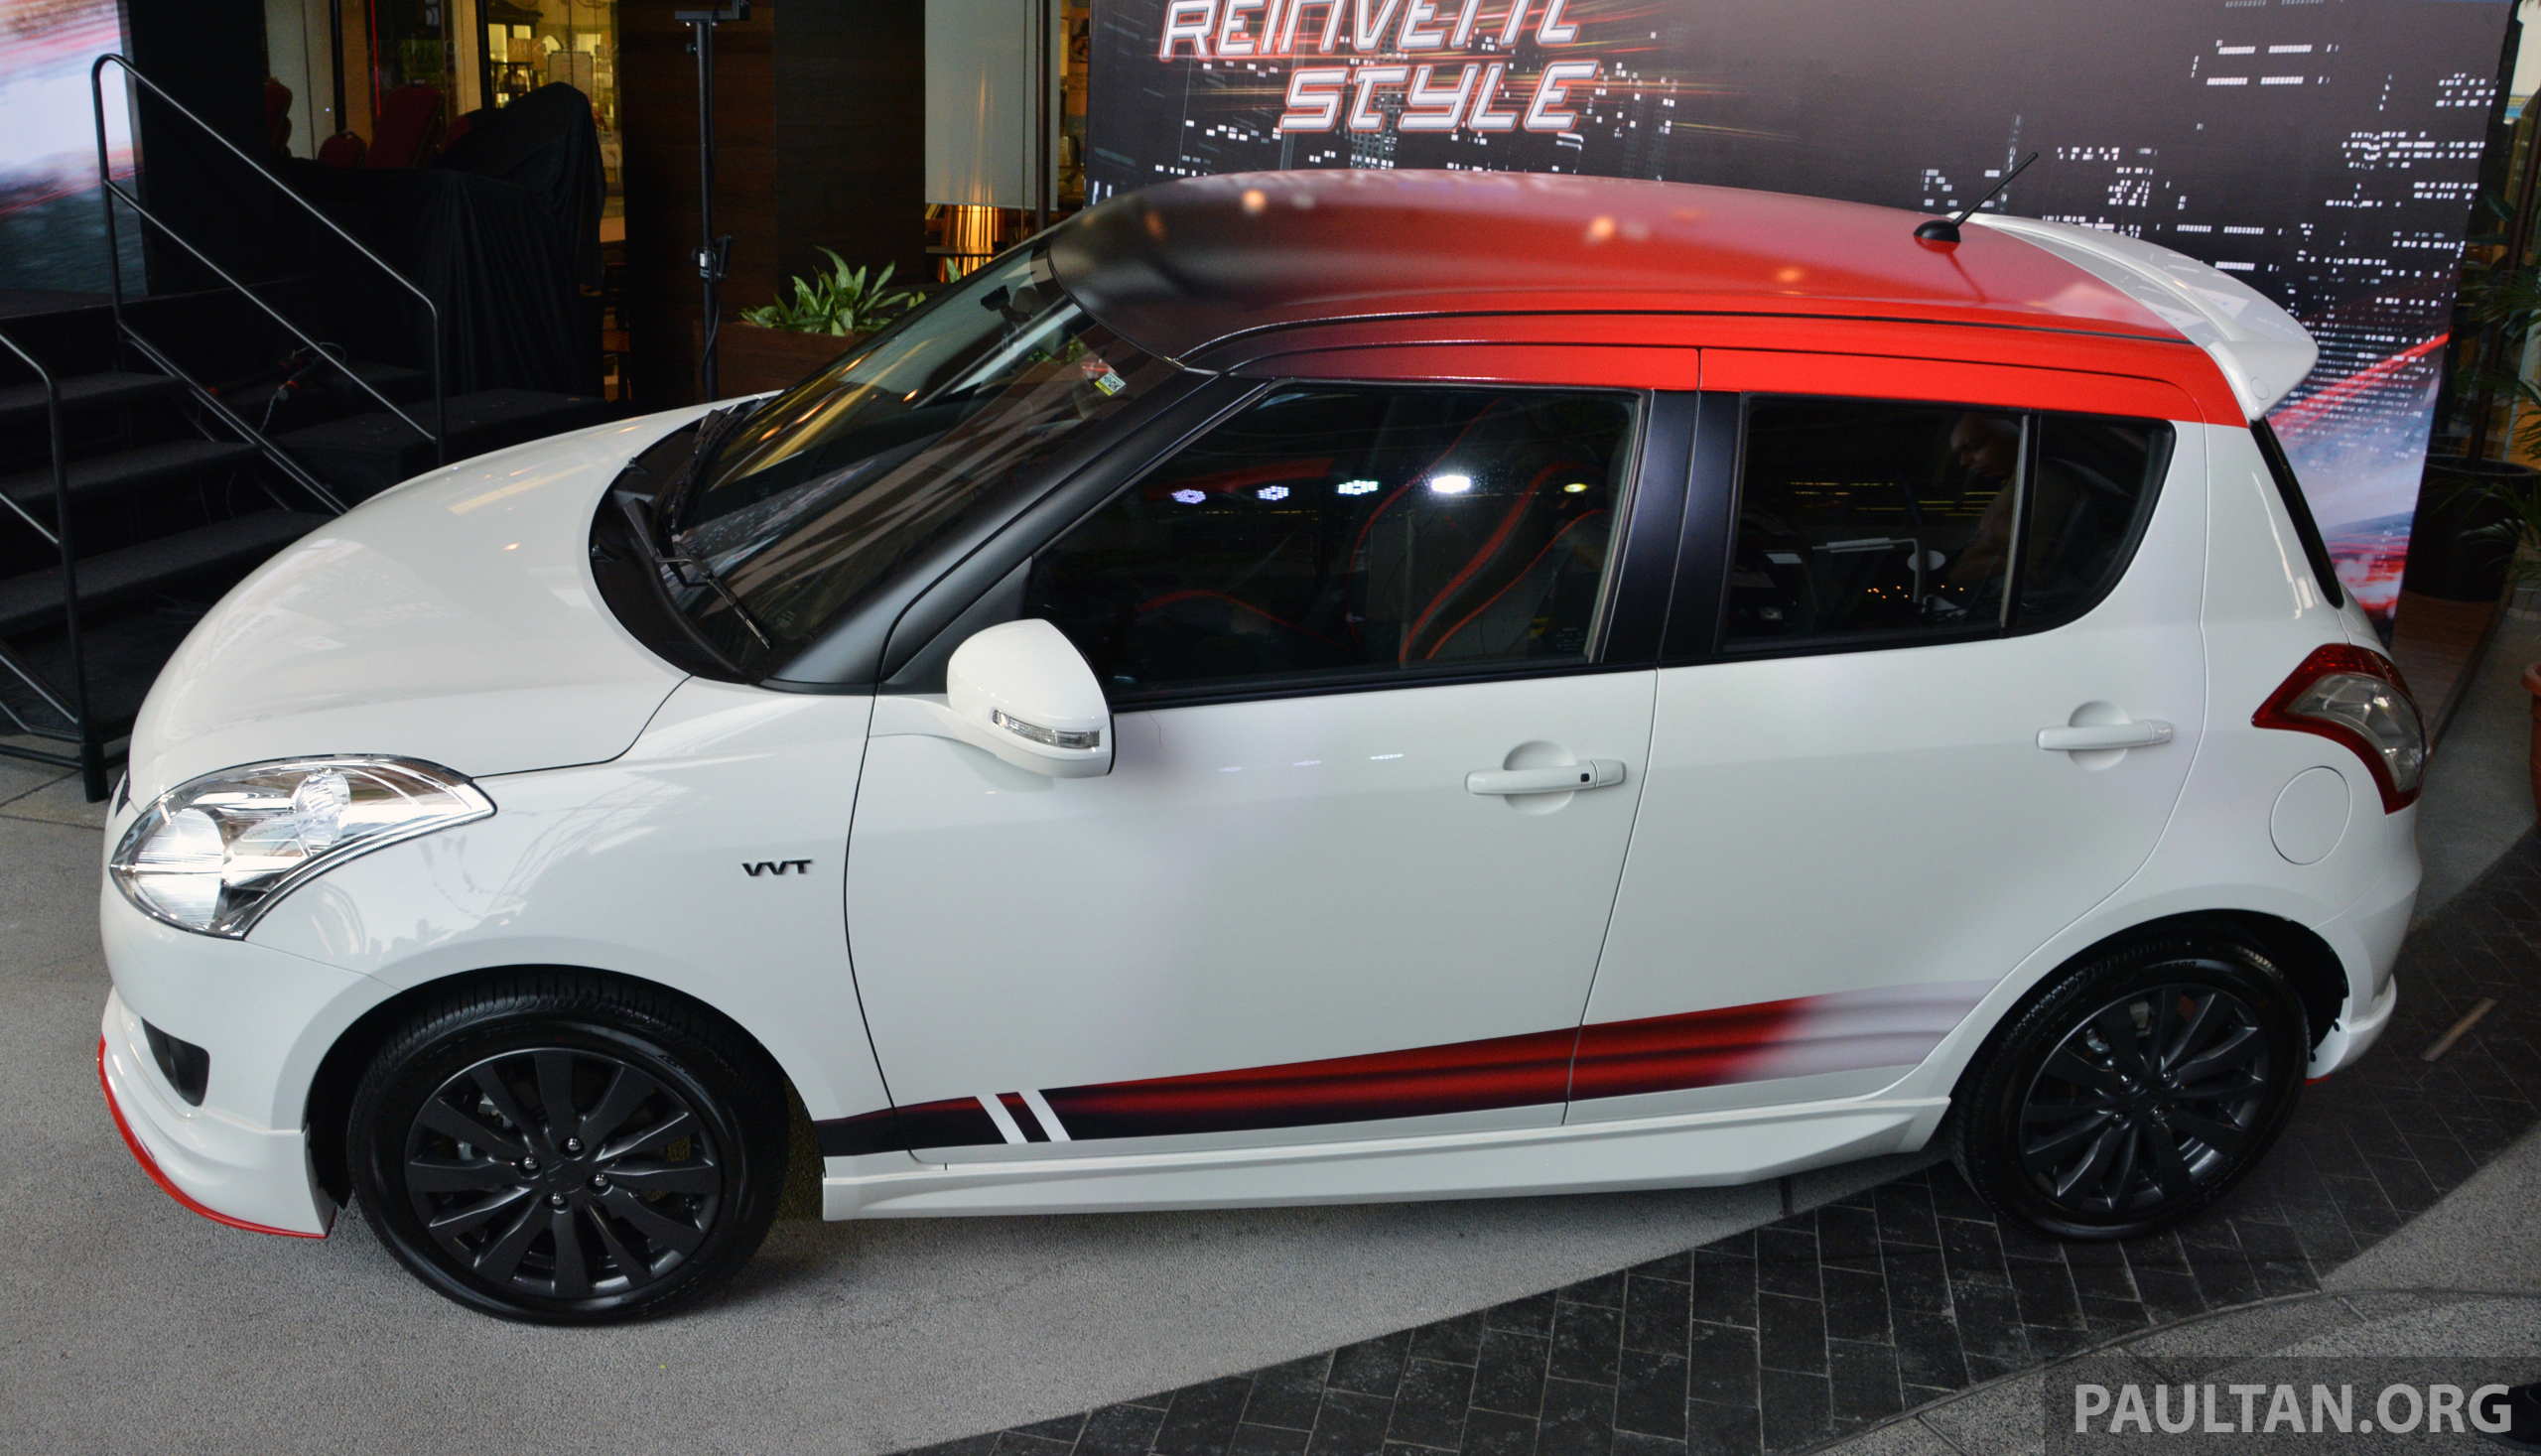 Suzuki Swift Rs It S The Glx All Dressed Up Rm80k Paul